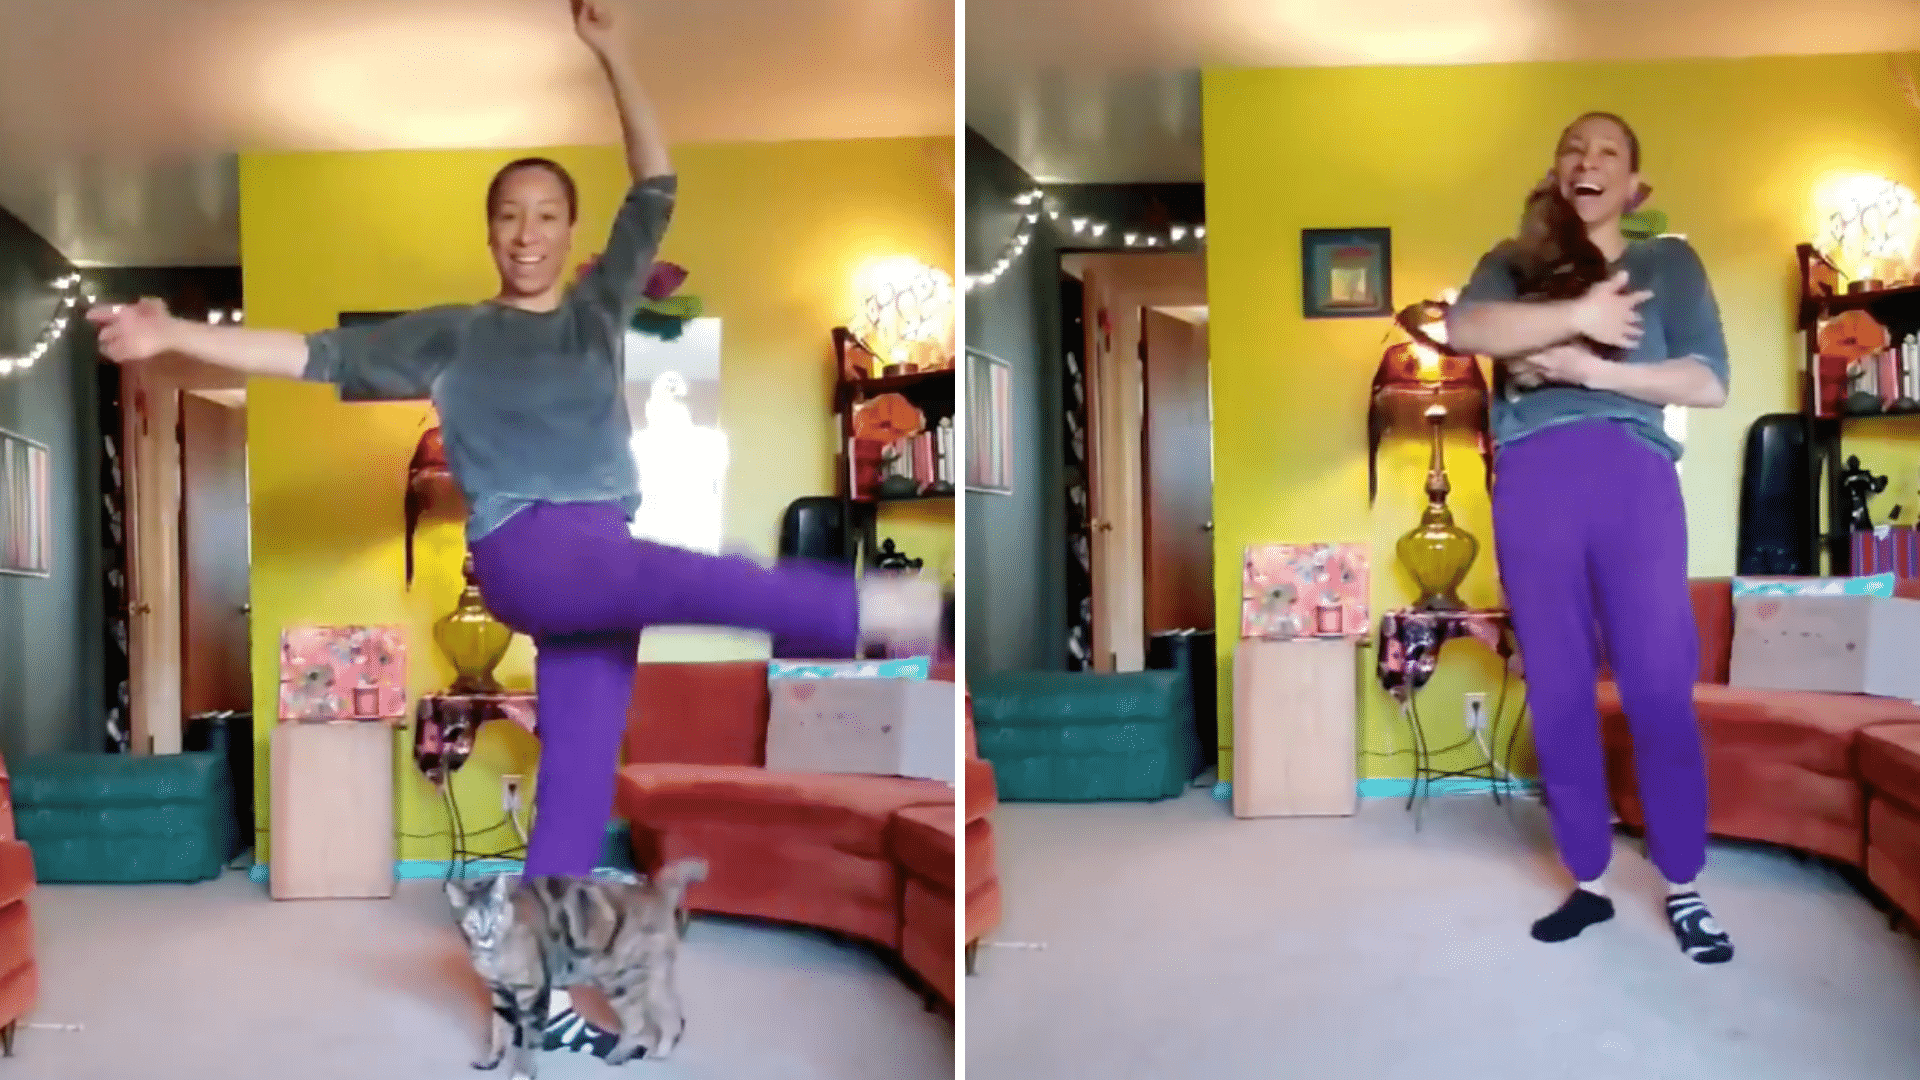 A Ballet Teacher Was Giving a Remote Dance Lesson, but Her Cat Decided to Steal the Show!